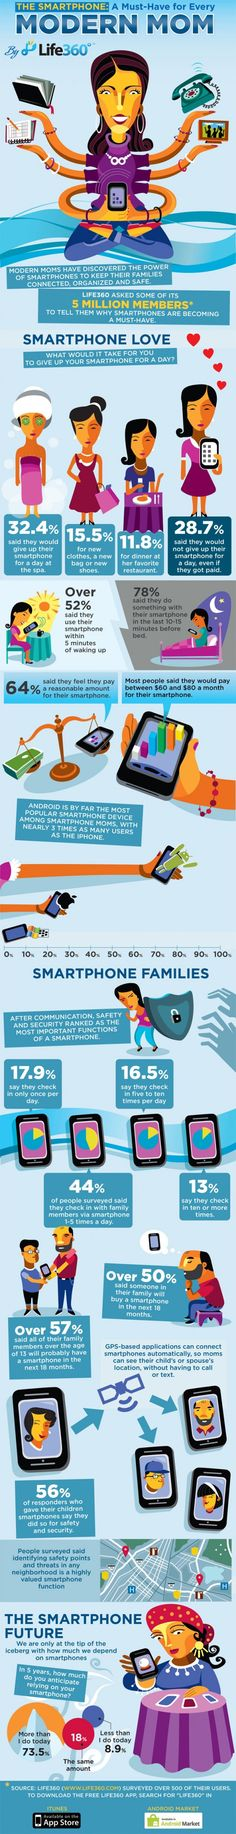 Just 15 years ago cell phones were rare, 3x as big and didn't do nearly as many cool things. We used our phones just to talk. These days though, more and more people are getting better and faster technology to help them keep up with their busy lives and families. It is easy to see why the Modern Mom is depending more and more on her smartphone.    Brought to you by life360.com.